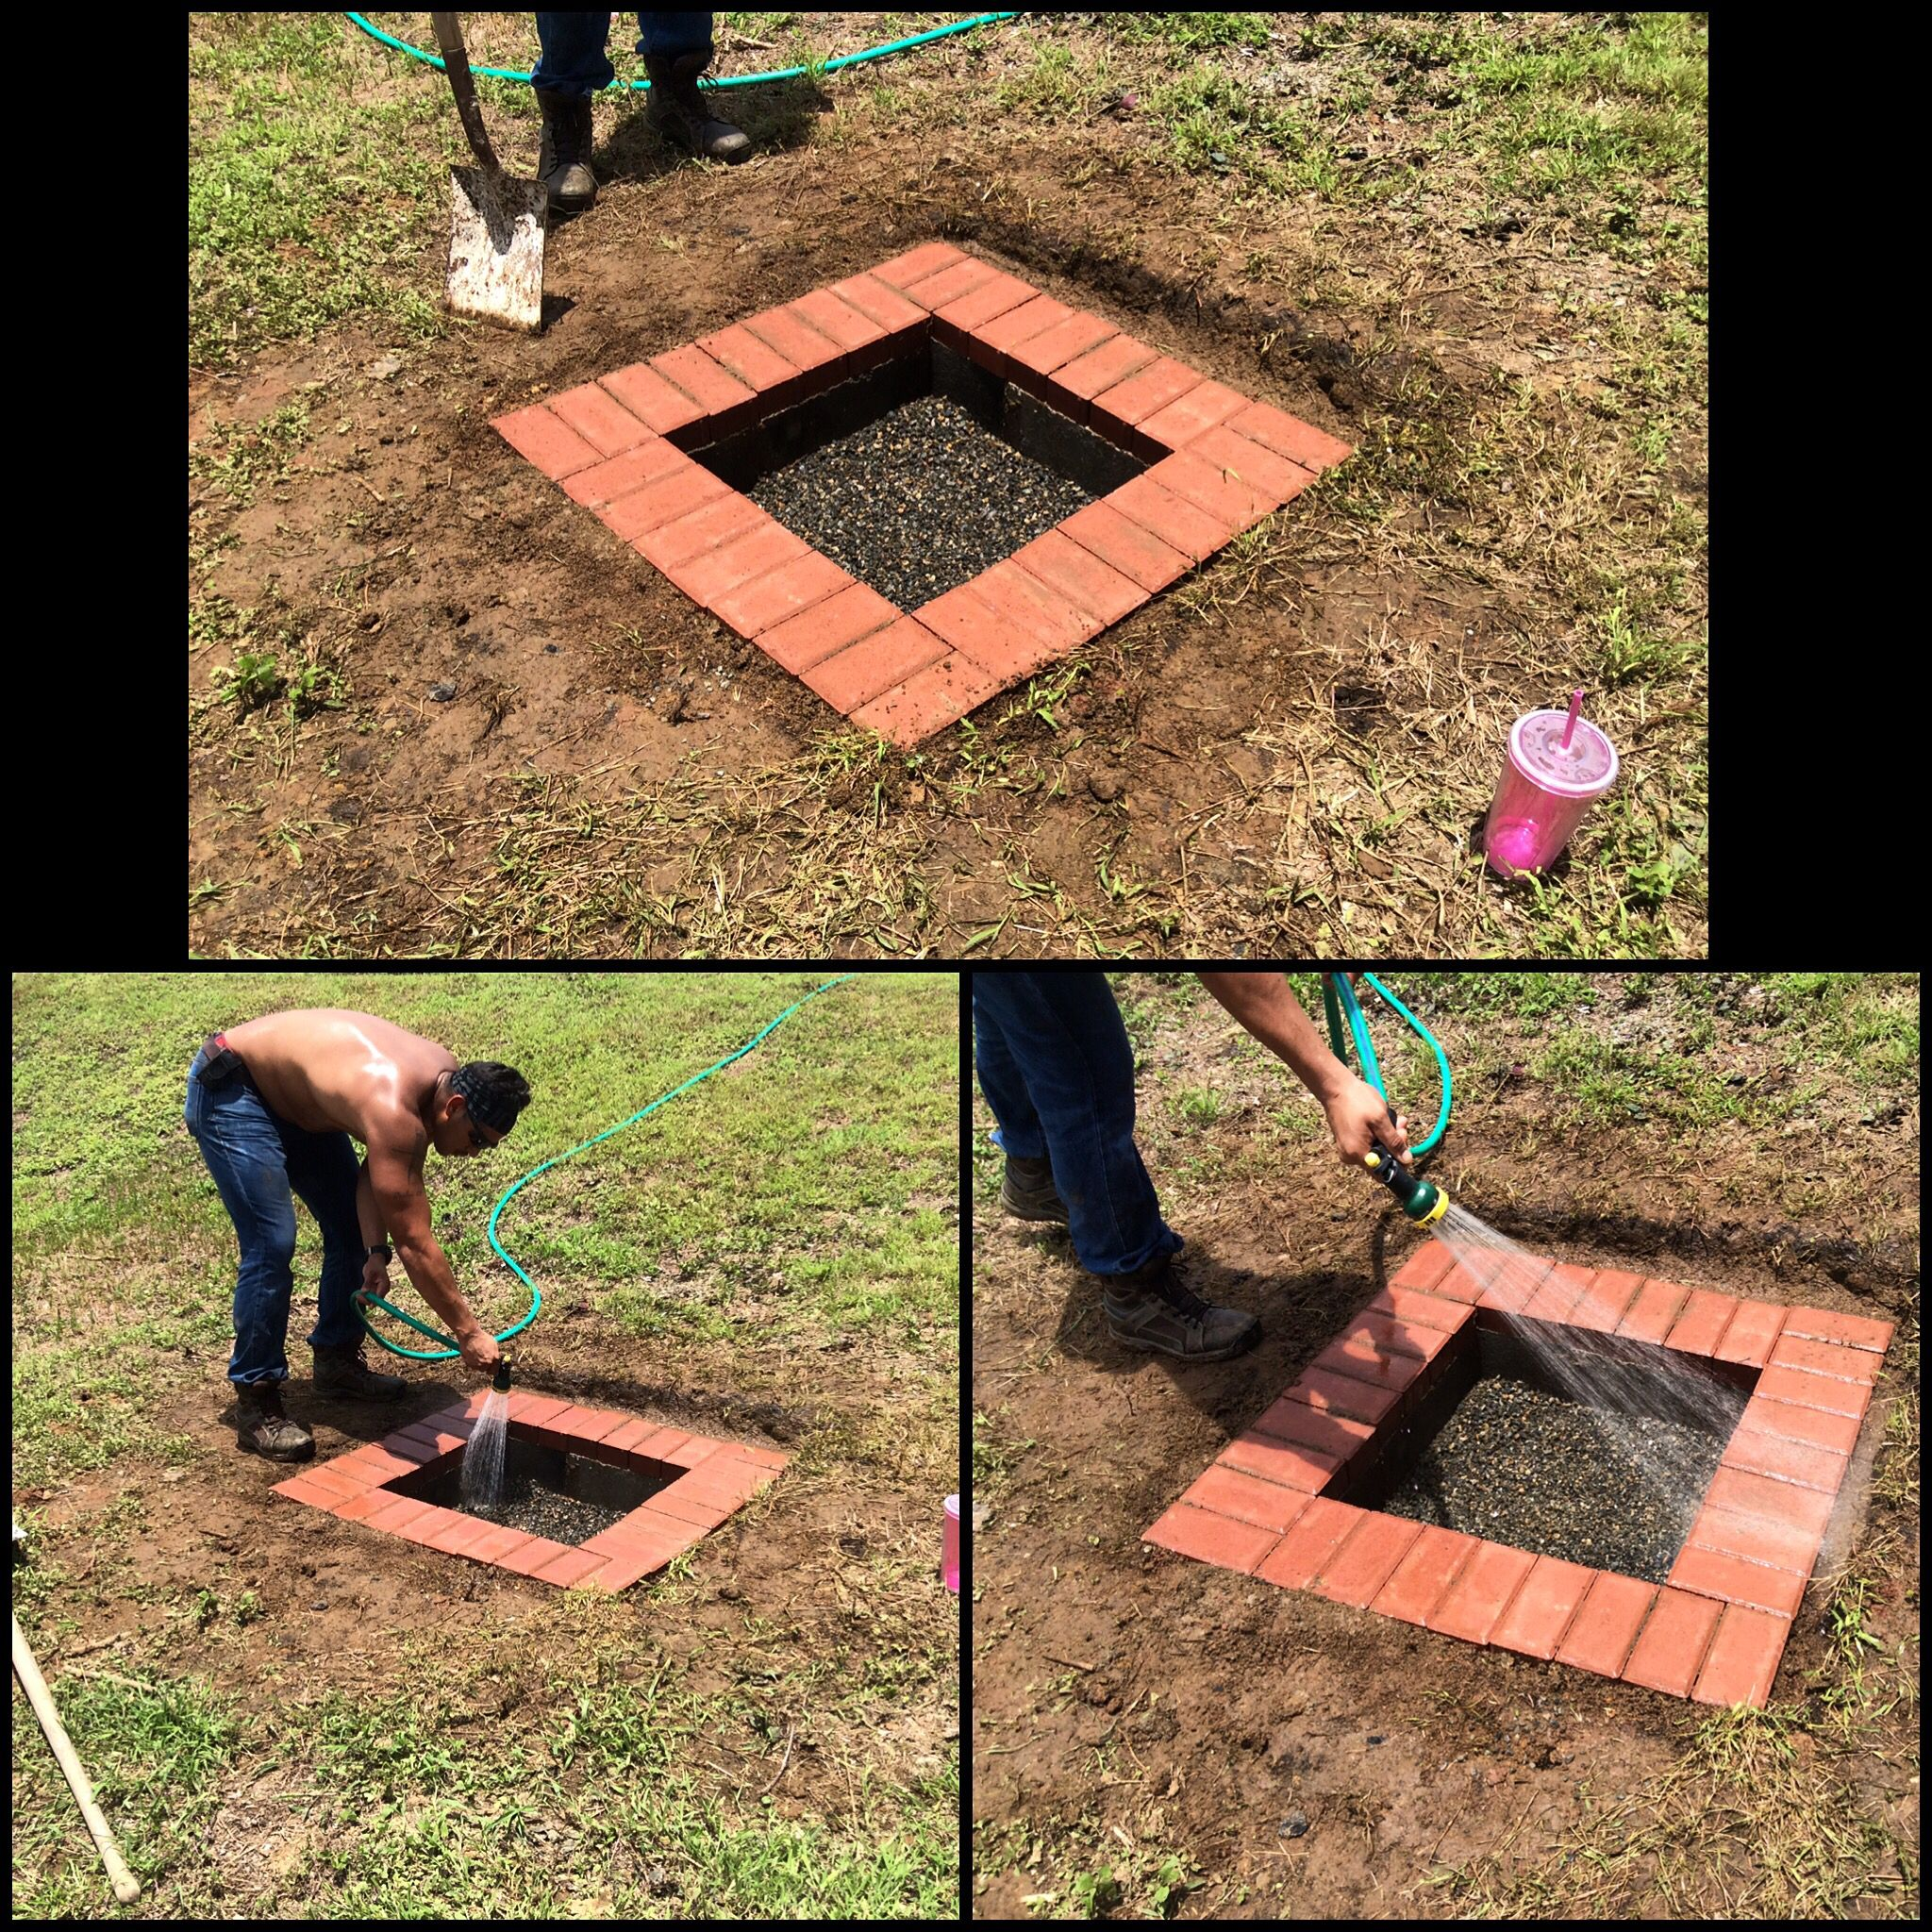 Diy Fire Pit Dig A Square Hole Making Sure Edges Are And Bottom Are Packed Tight And Level Dig Deep Enough So Fire Pit Essentials Fire Pit Outside Fire Pits